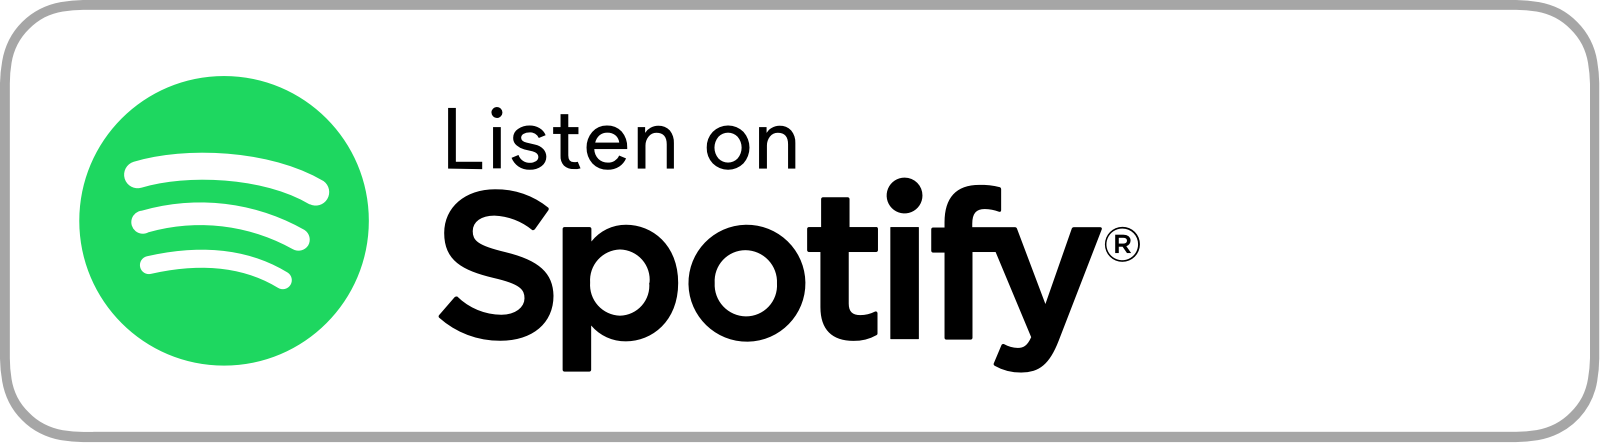 podcast-badge-spotify.png